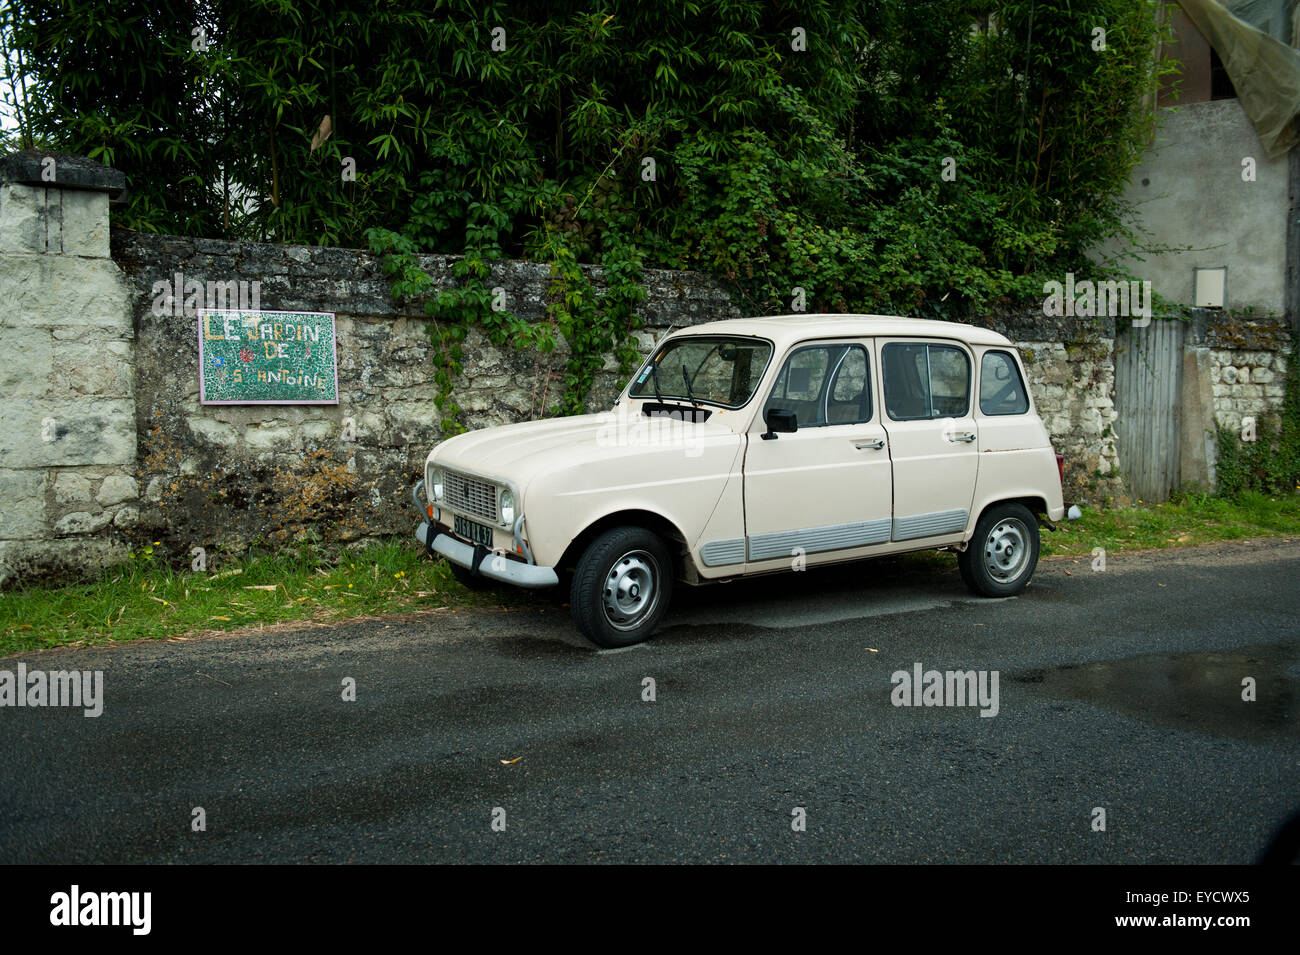 classic renault 4 car parked in chinon loire valley france stock photo royalty free image. Black Bedroom Furniture Sets. Home Design Ideas